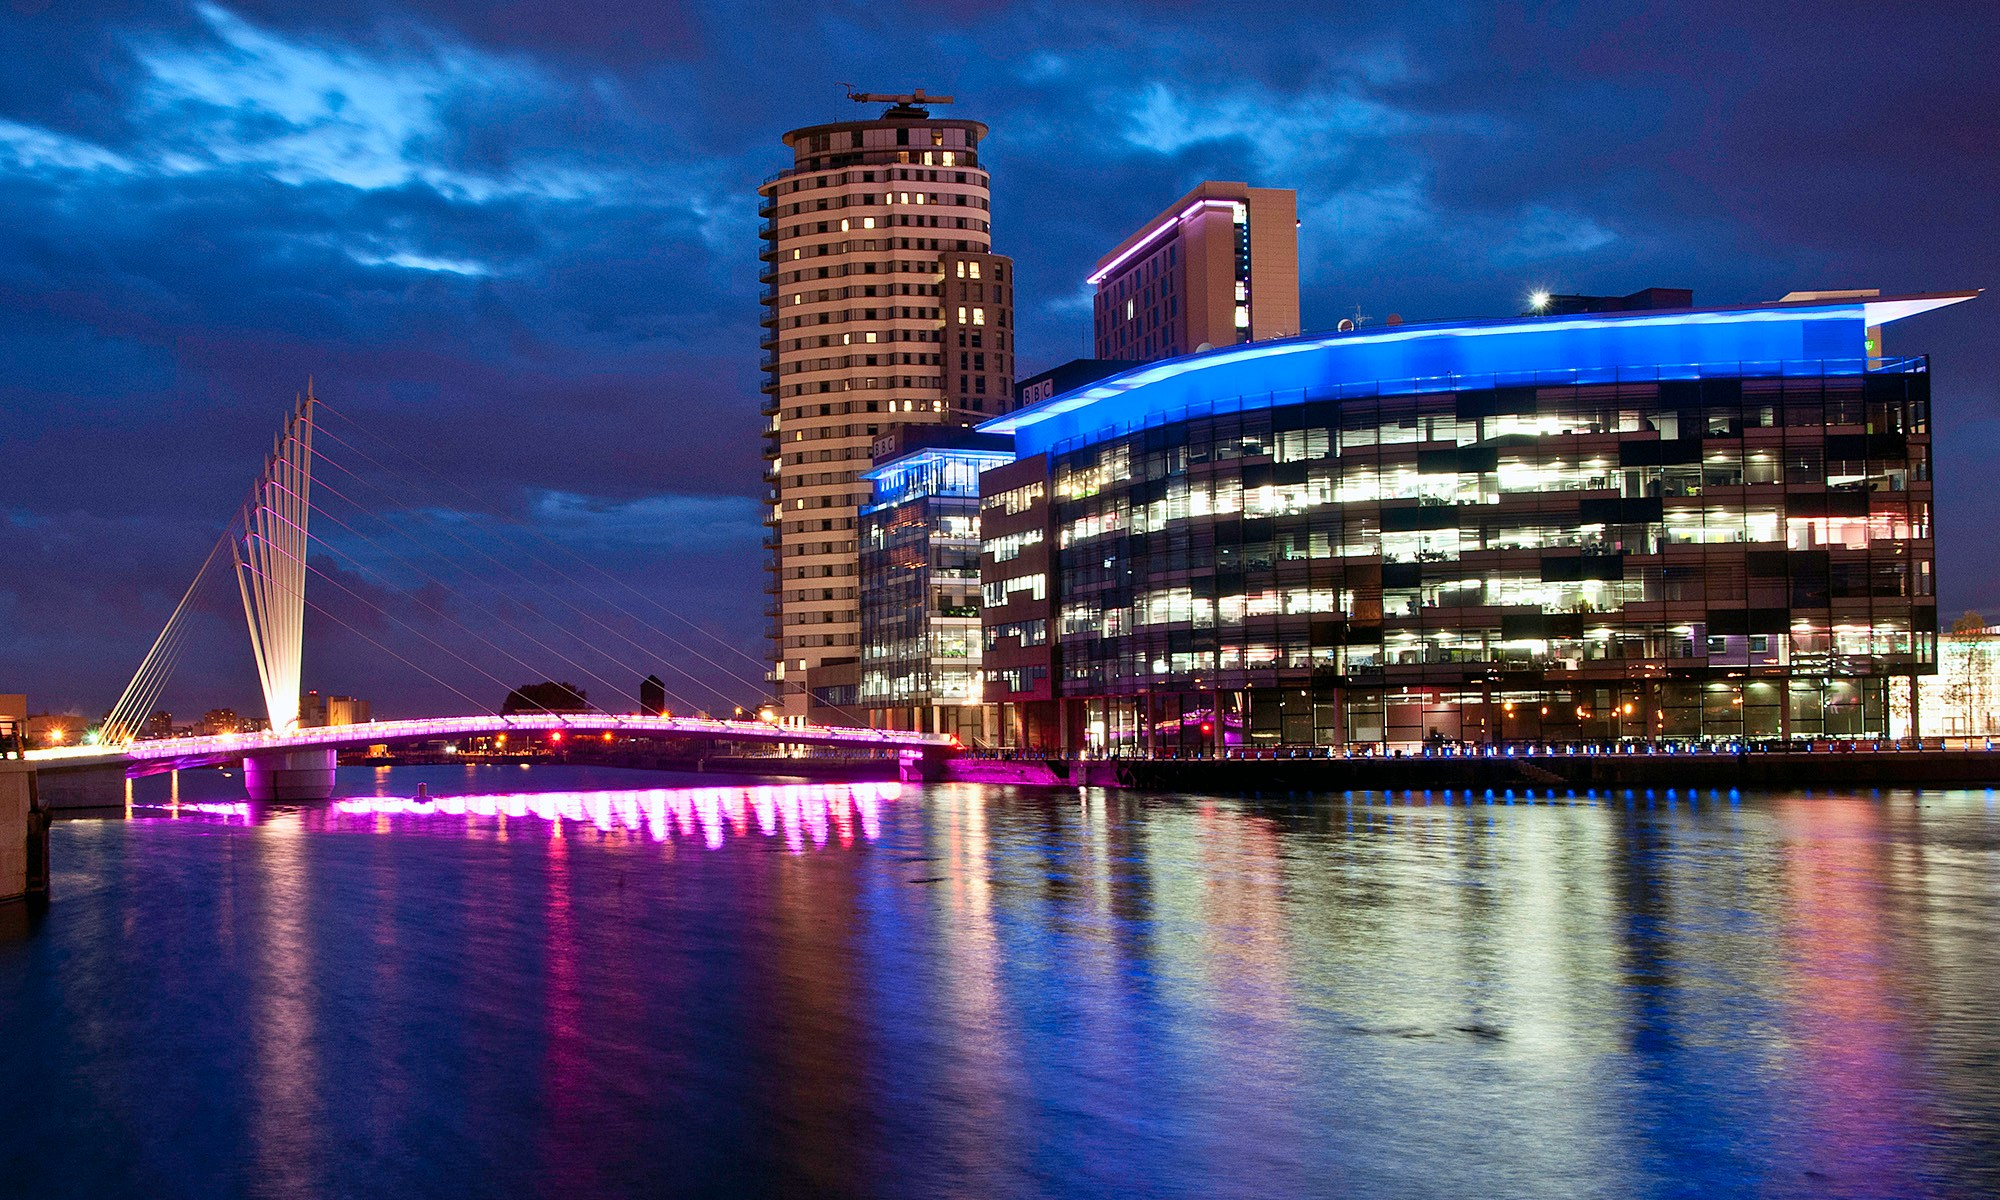 MediaCityUK Footbridge at Night